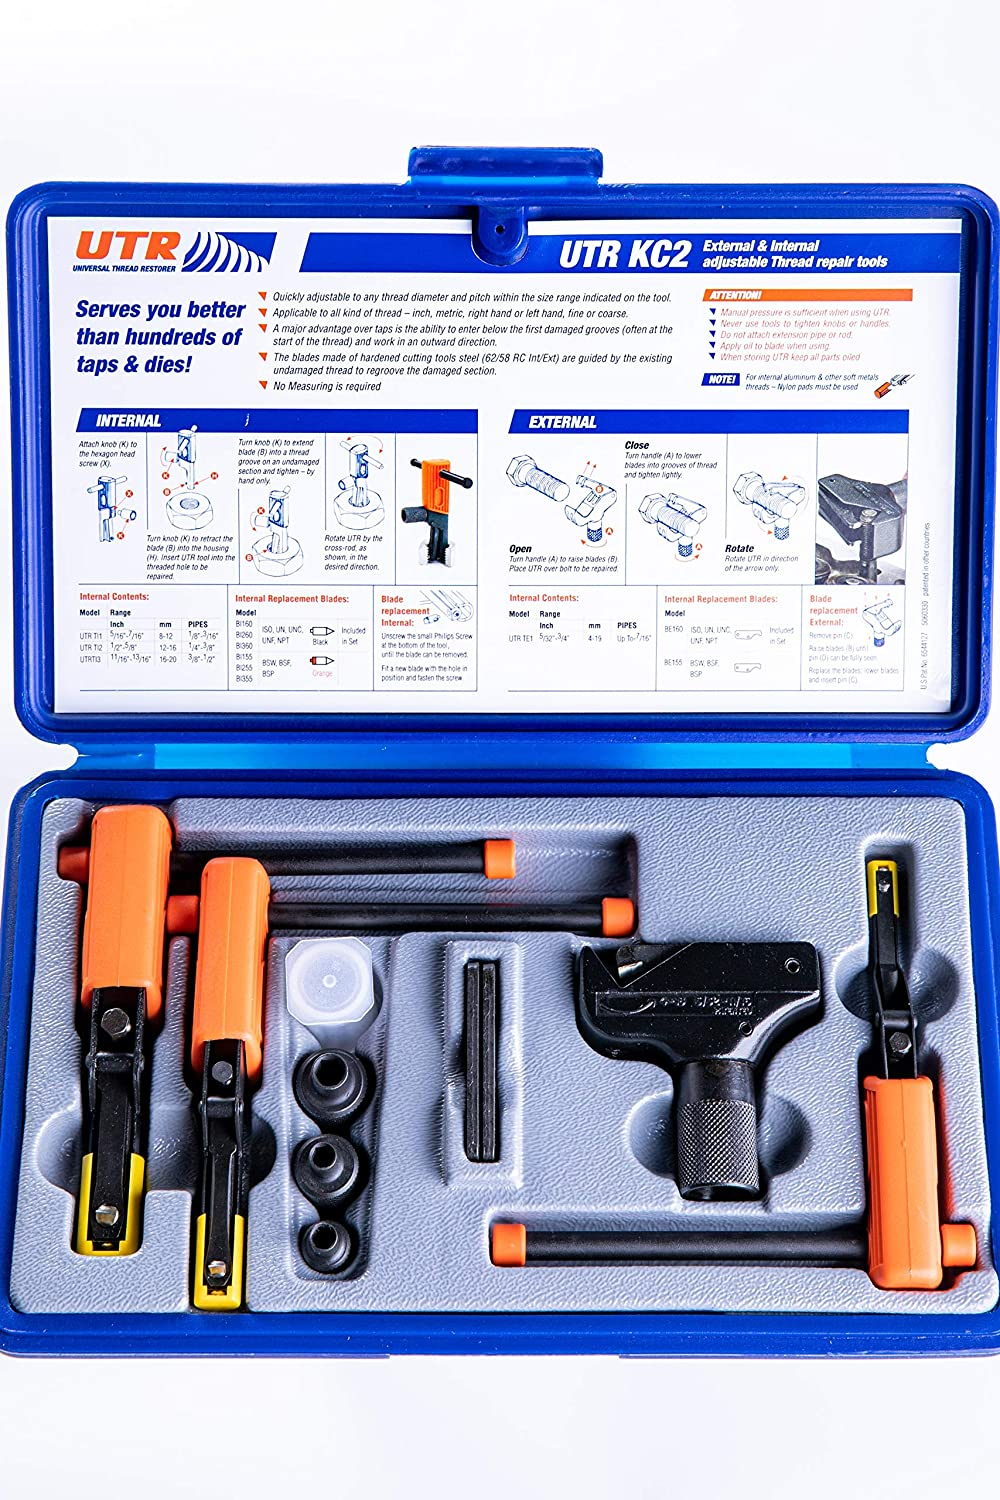 UTR KC2 - External & Internal Adjustable Restorers – Universal Thread Repair Tool Kit. Easily Replaces Hundreds of Taps and Dies. All In One Patented Solution.